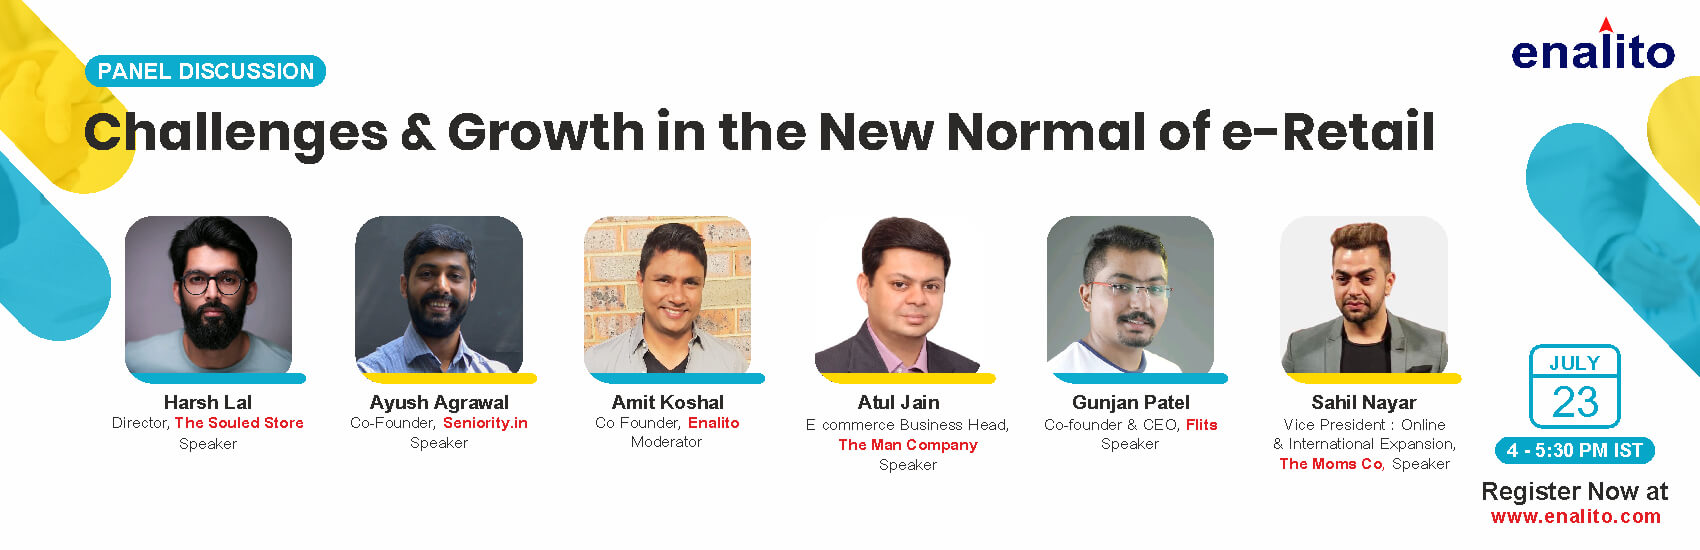 Challenges & Growth in the New Normal of e-Retail